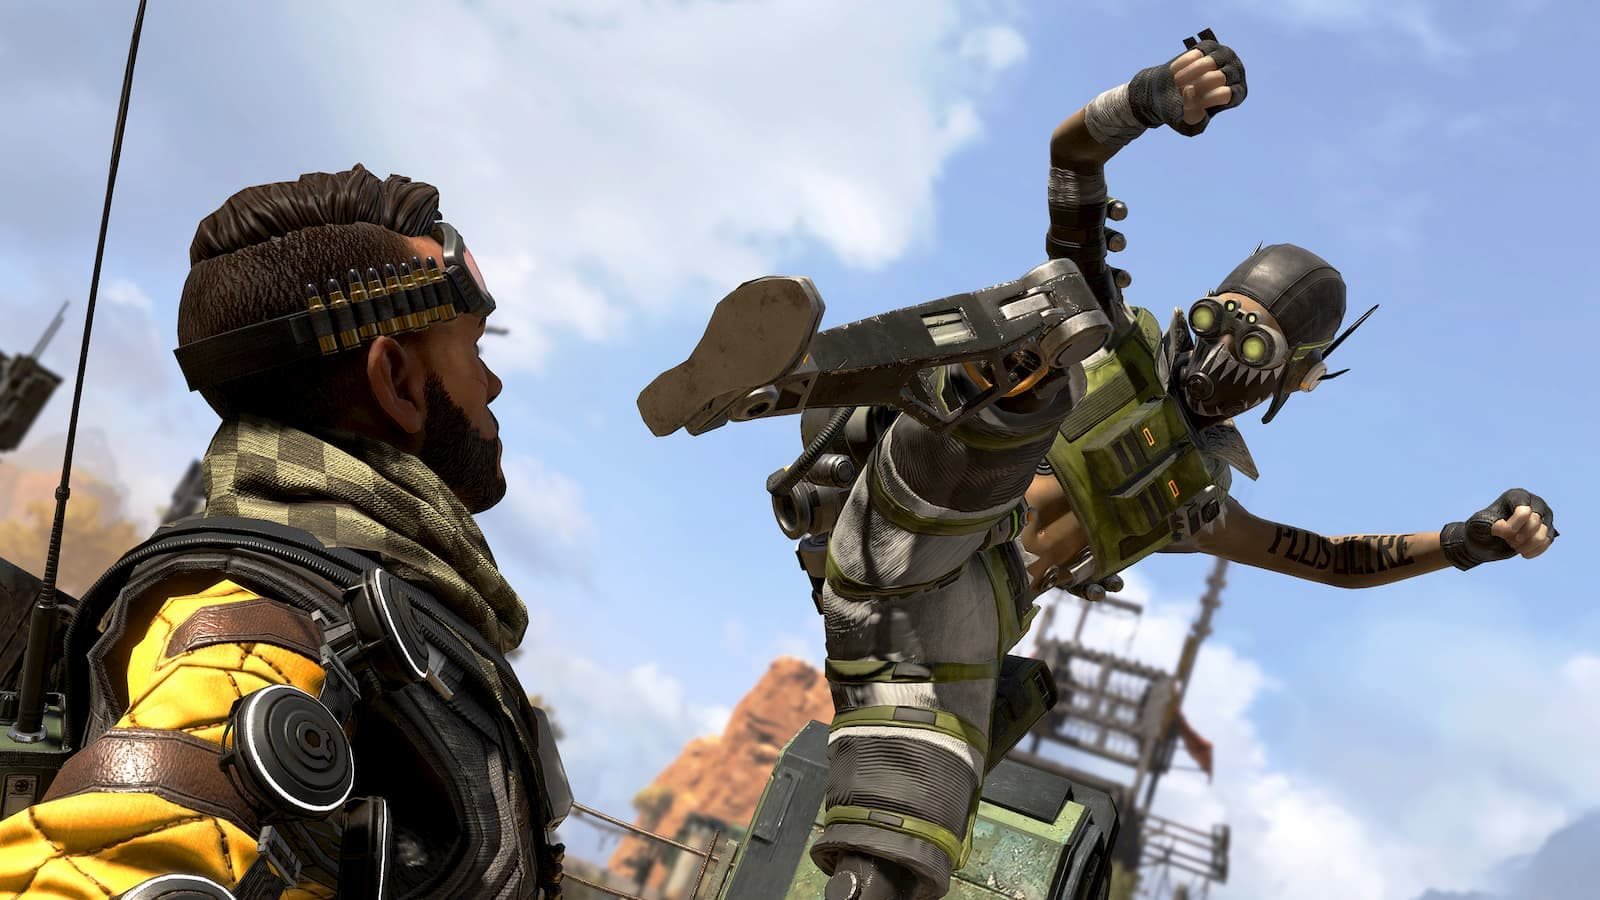 Apex Legends' has banned 500,000 accounts for cheating